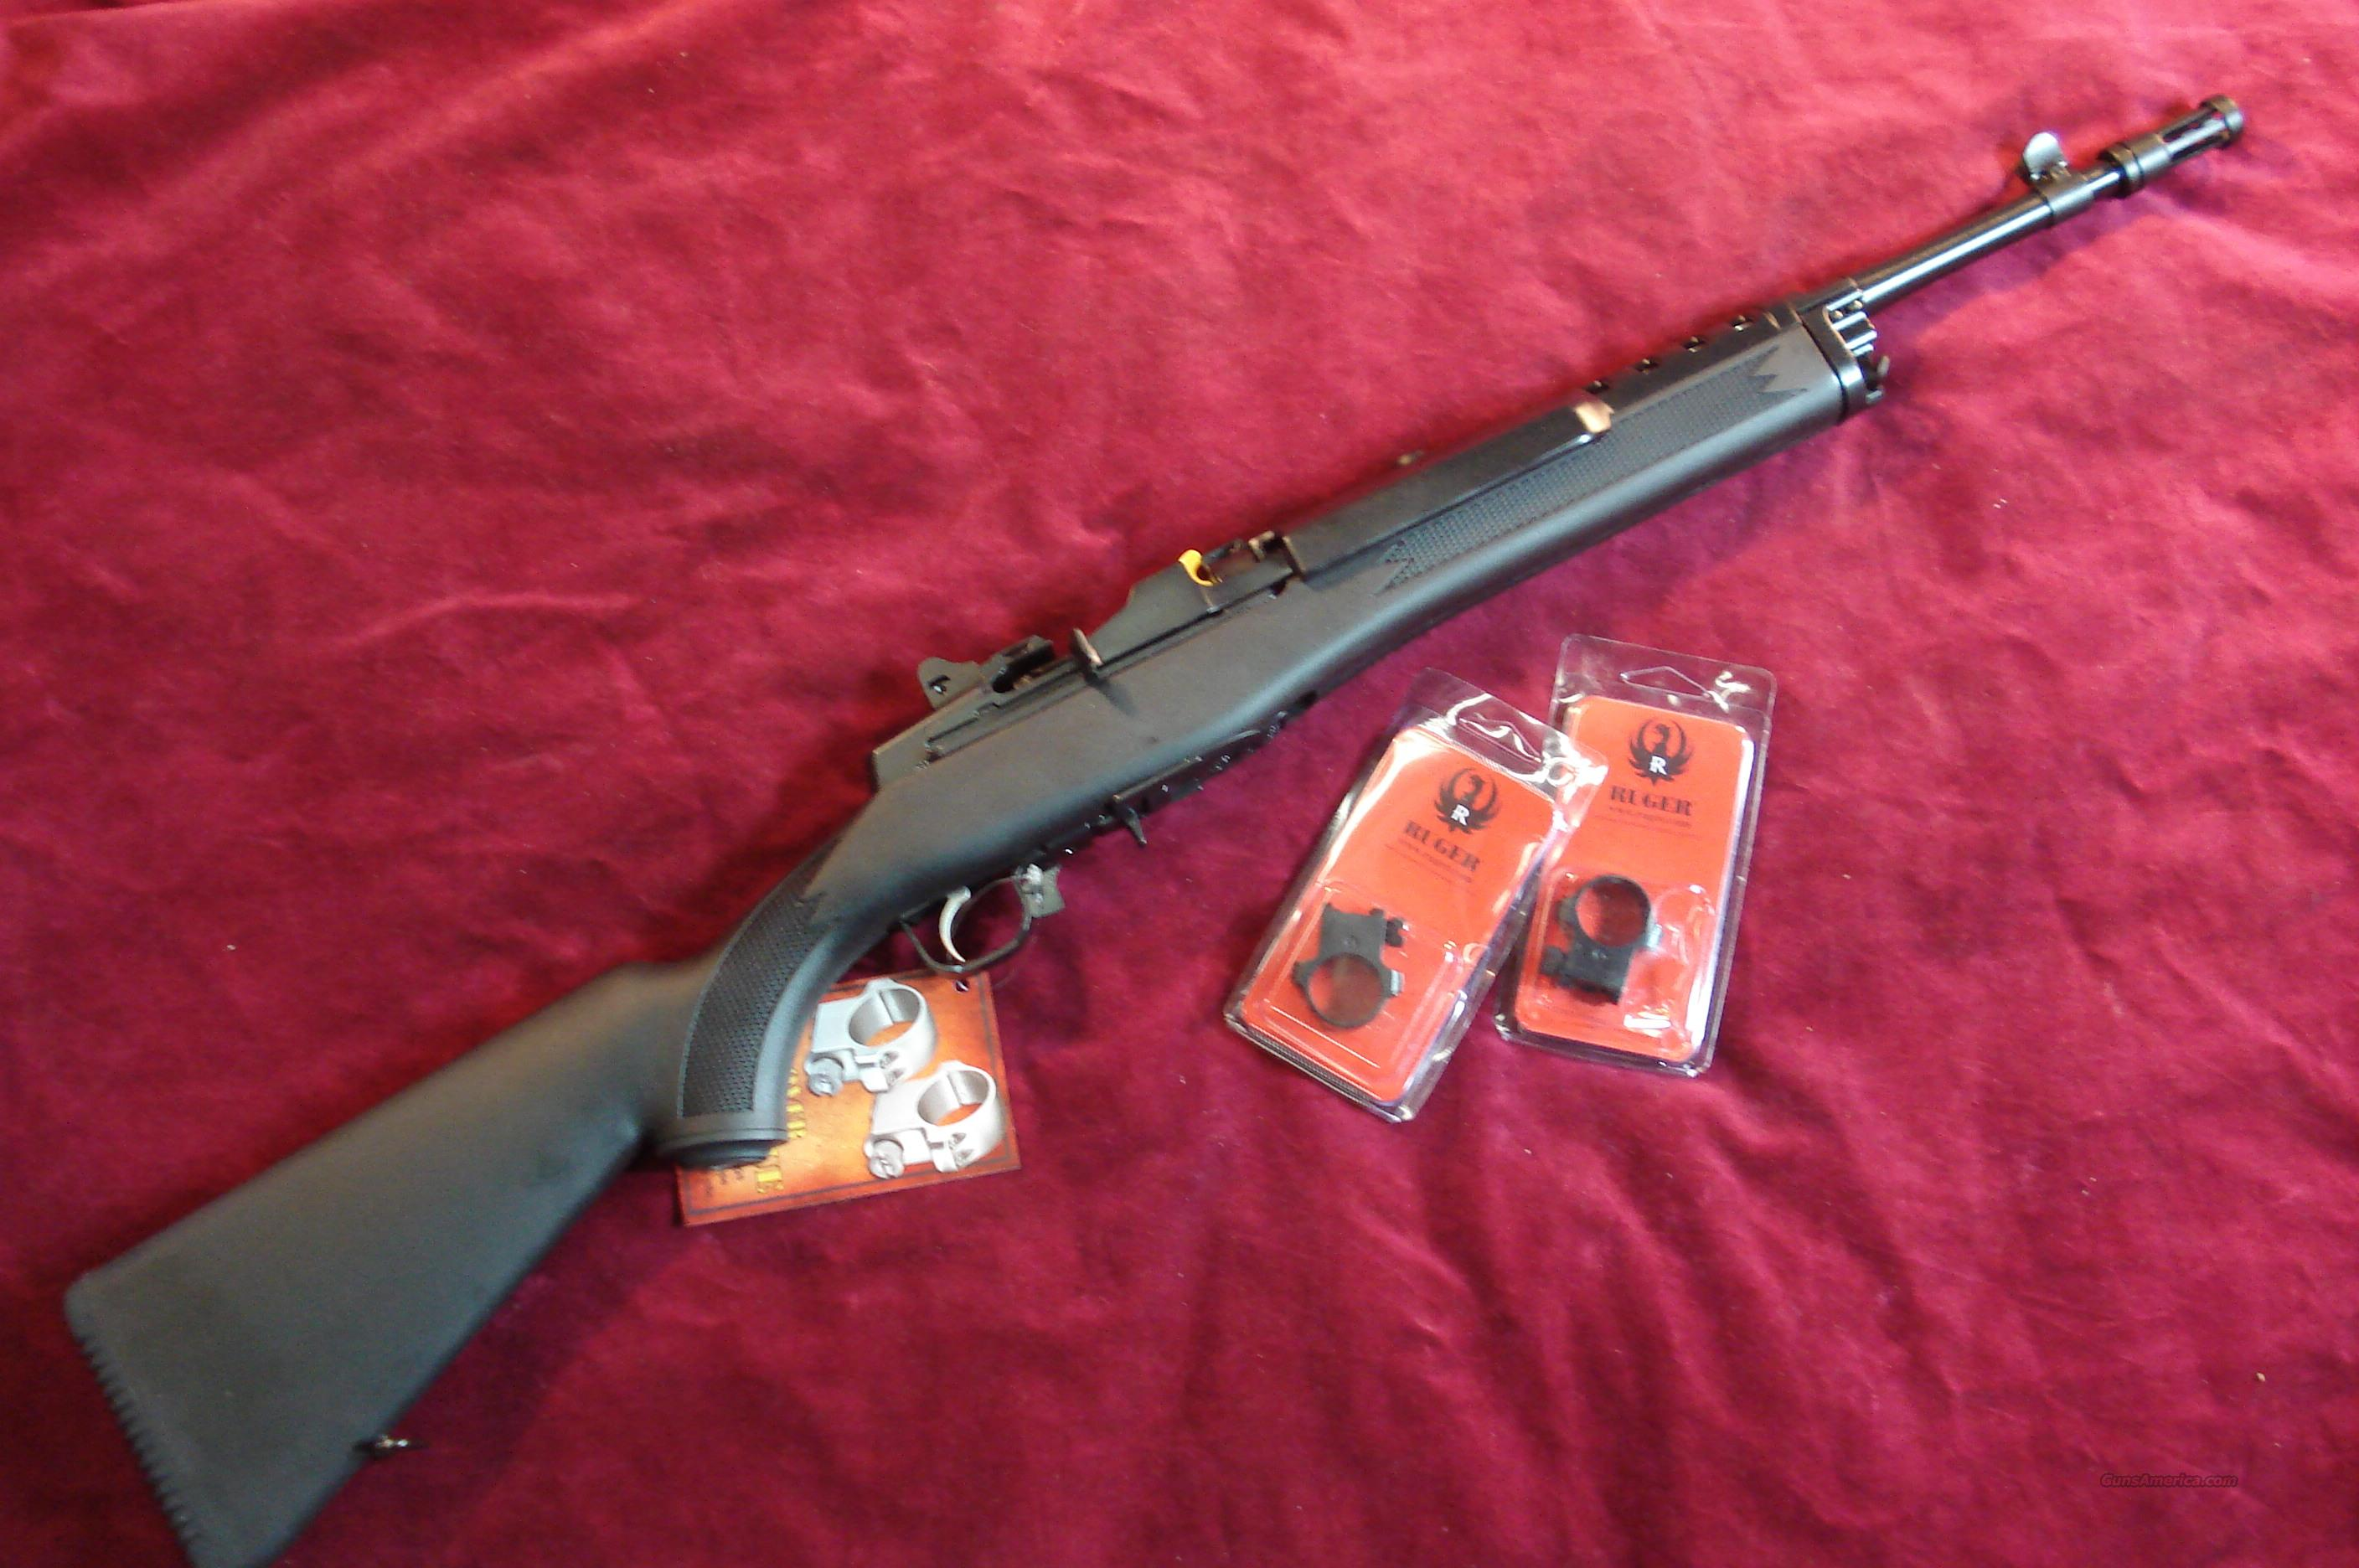 RUGER MINI 14 TACTICAL RIFLE 223 CAL. NEW (M-14/5GBCPC)   (05848)  Guns > Rifles > Ruger Rifles > Mini-14 Type